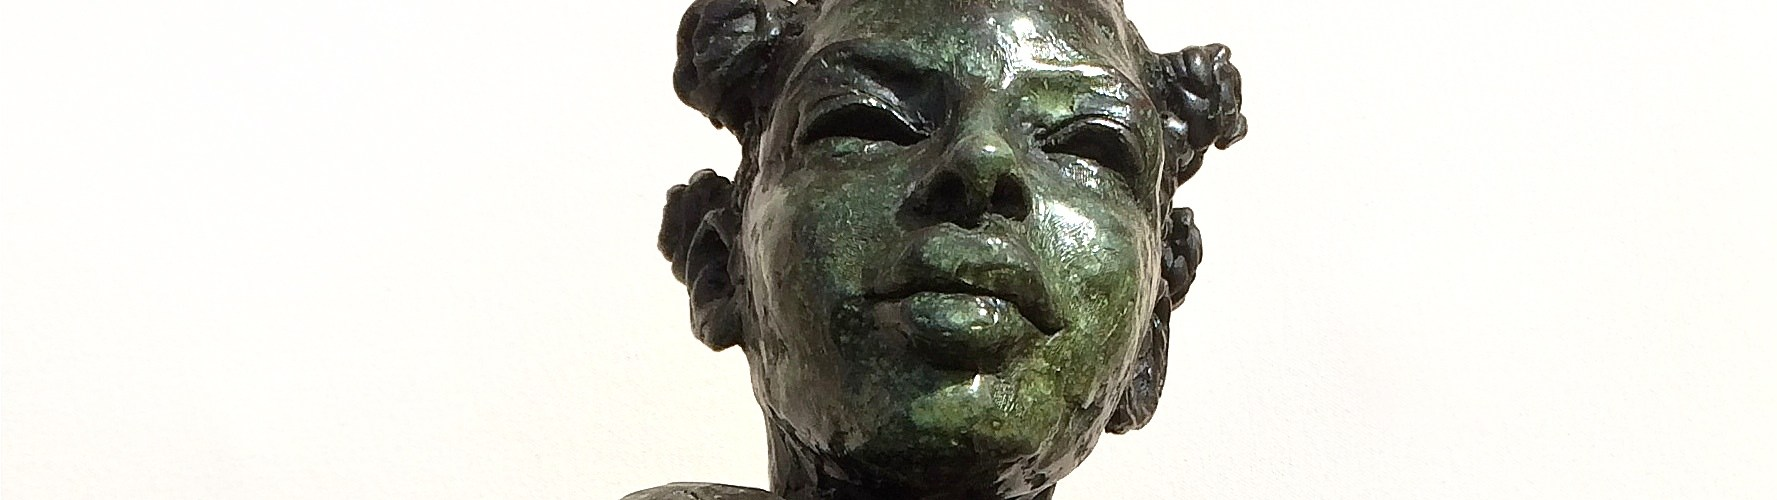 Ella Bronze female sculpture bust of black woman by artist Manuel Palacio